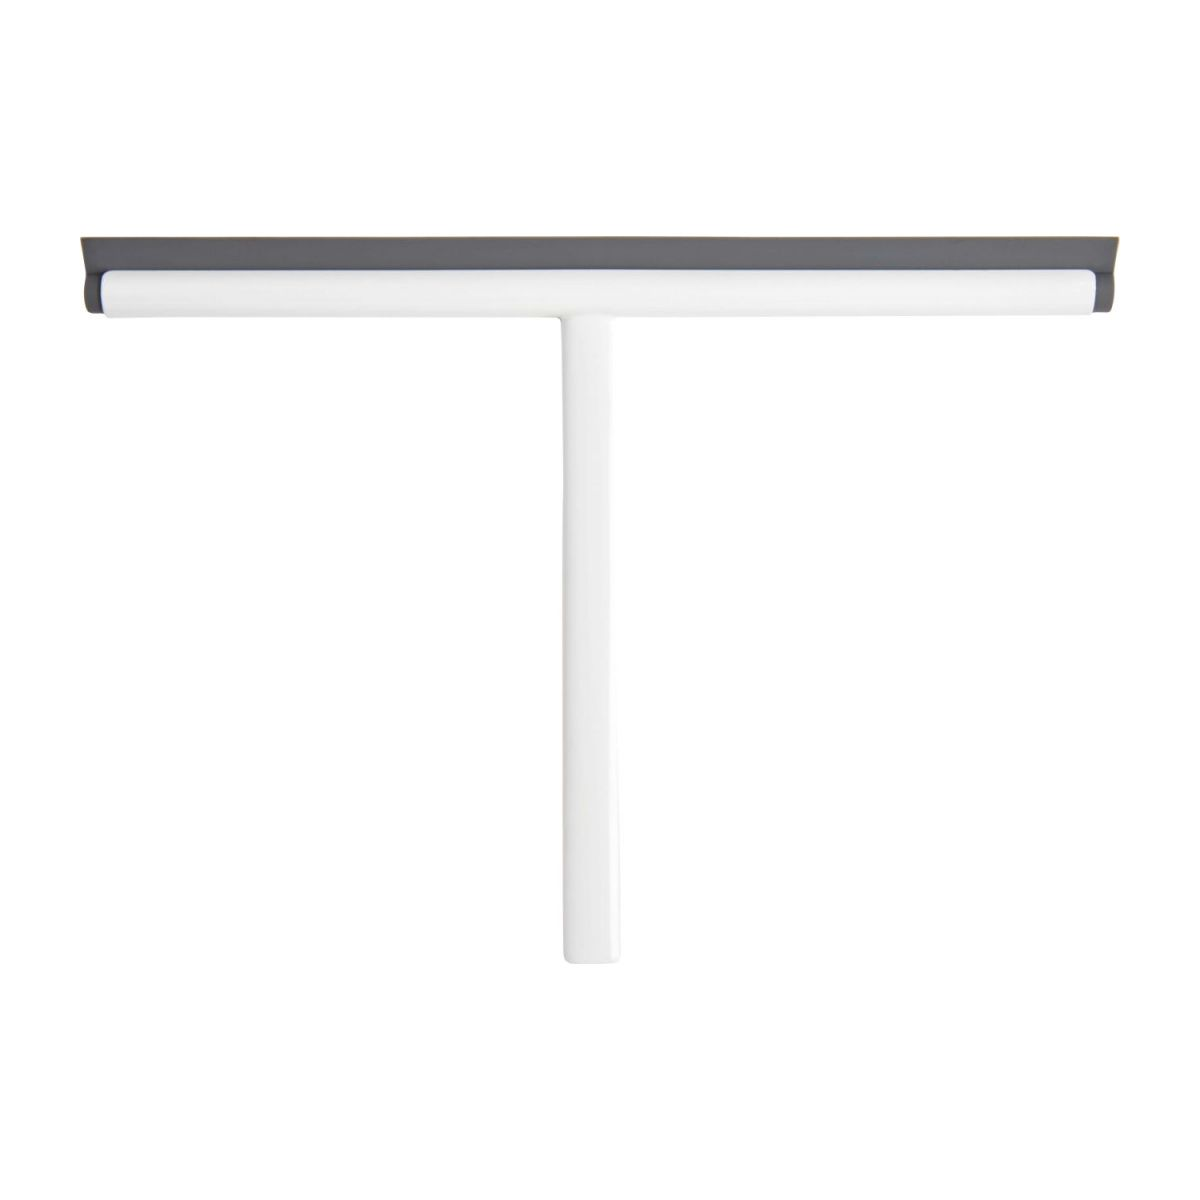 White Shower Squeegee n°4